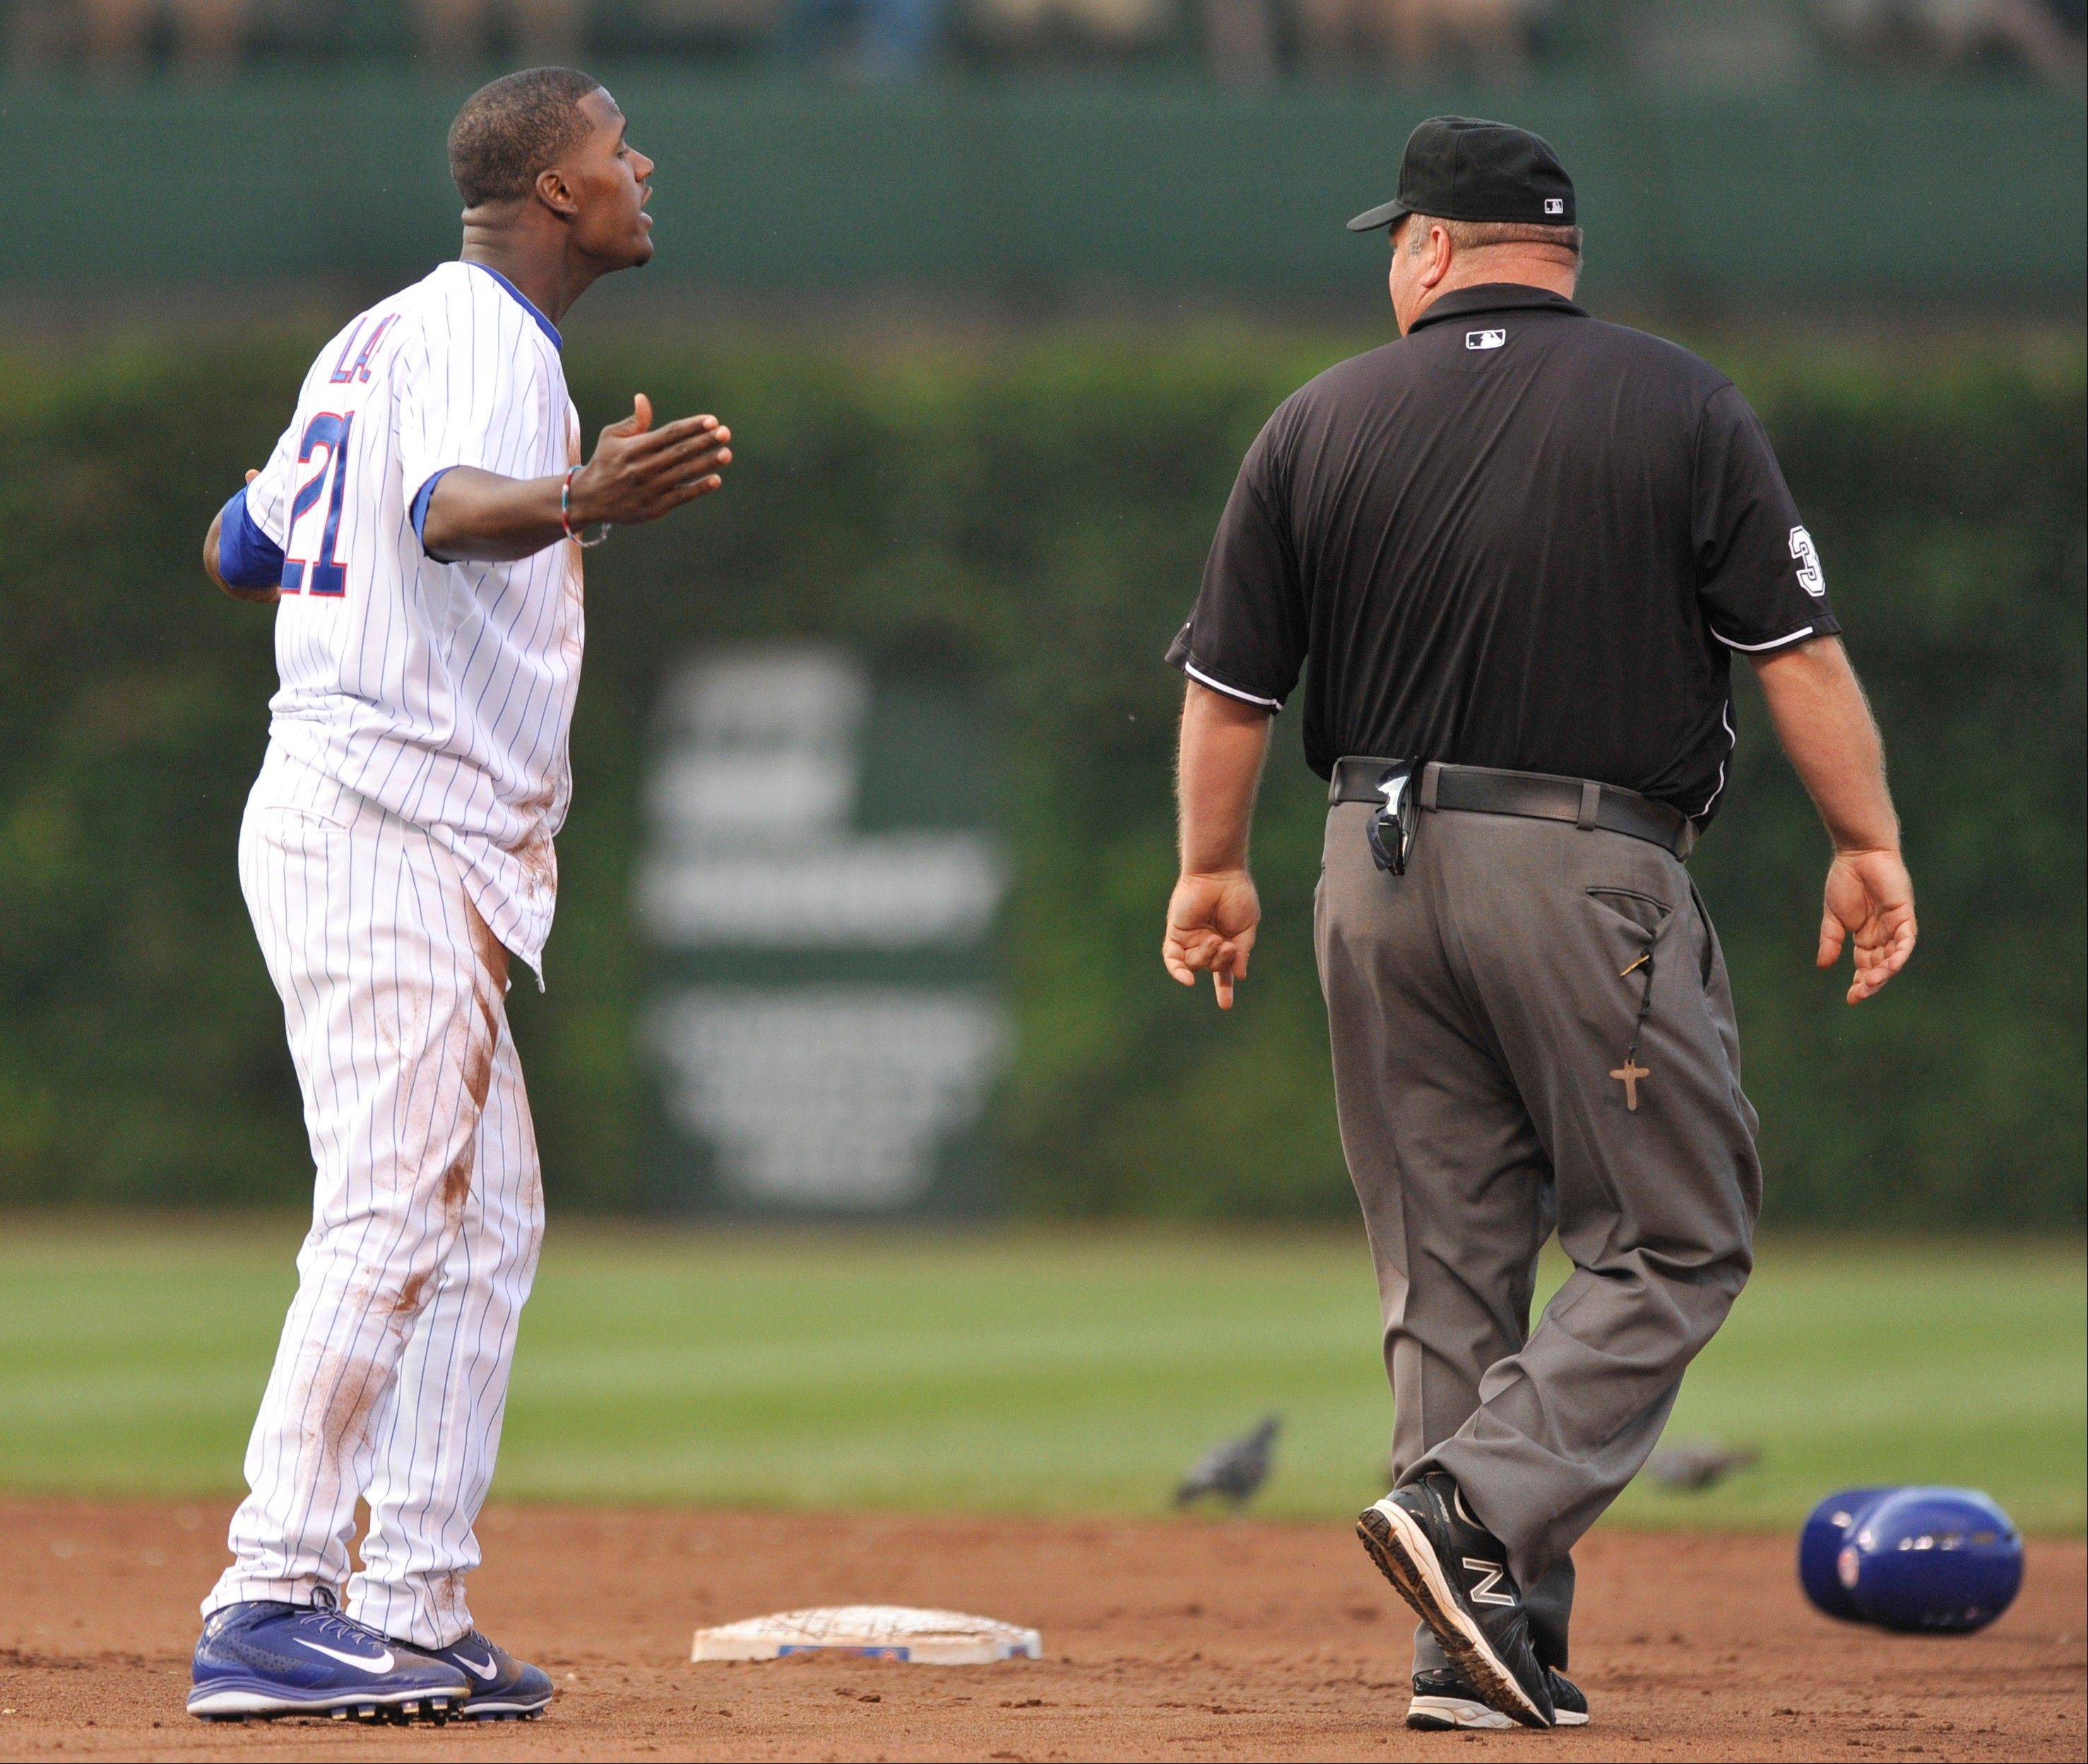 The Cubs' Junior Lake argues with second base umpire Wally Bell after being caught stealing second base during the seventh inning Saturday against Milwaukee.